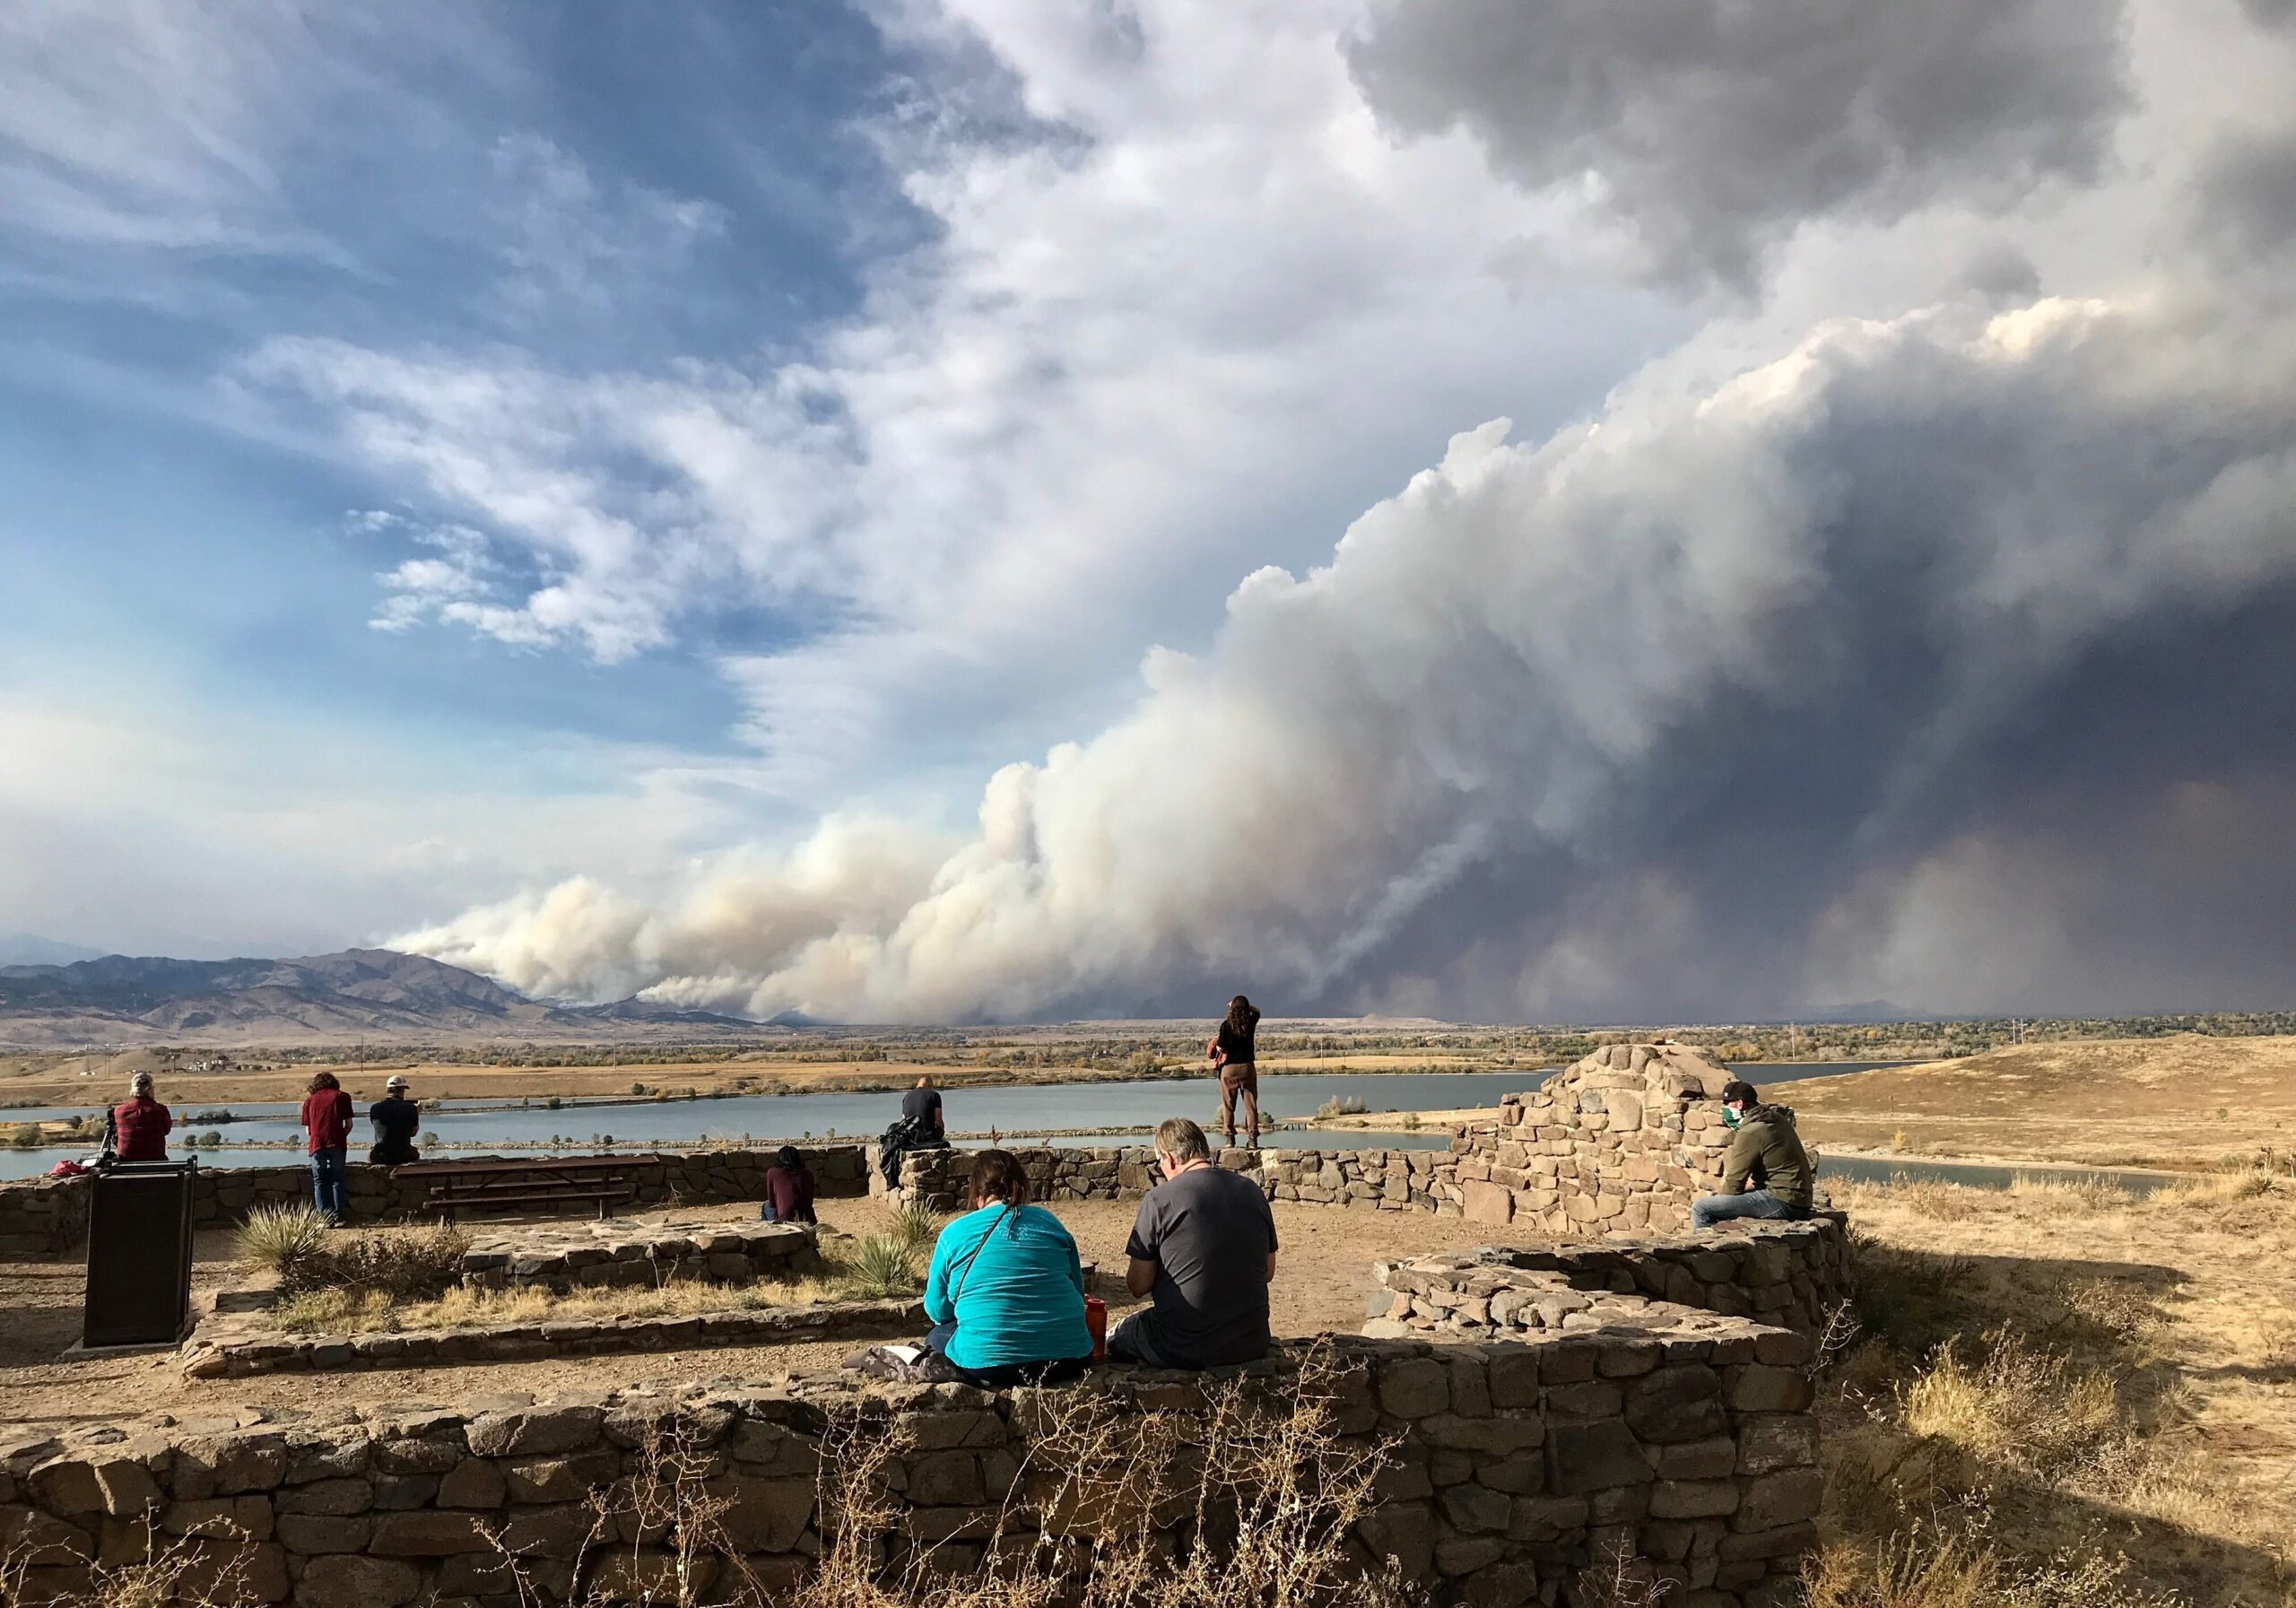 The Cal-Wood fire started on October 17, 2020, in the foothills above Boulder.